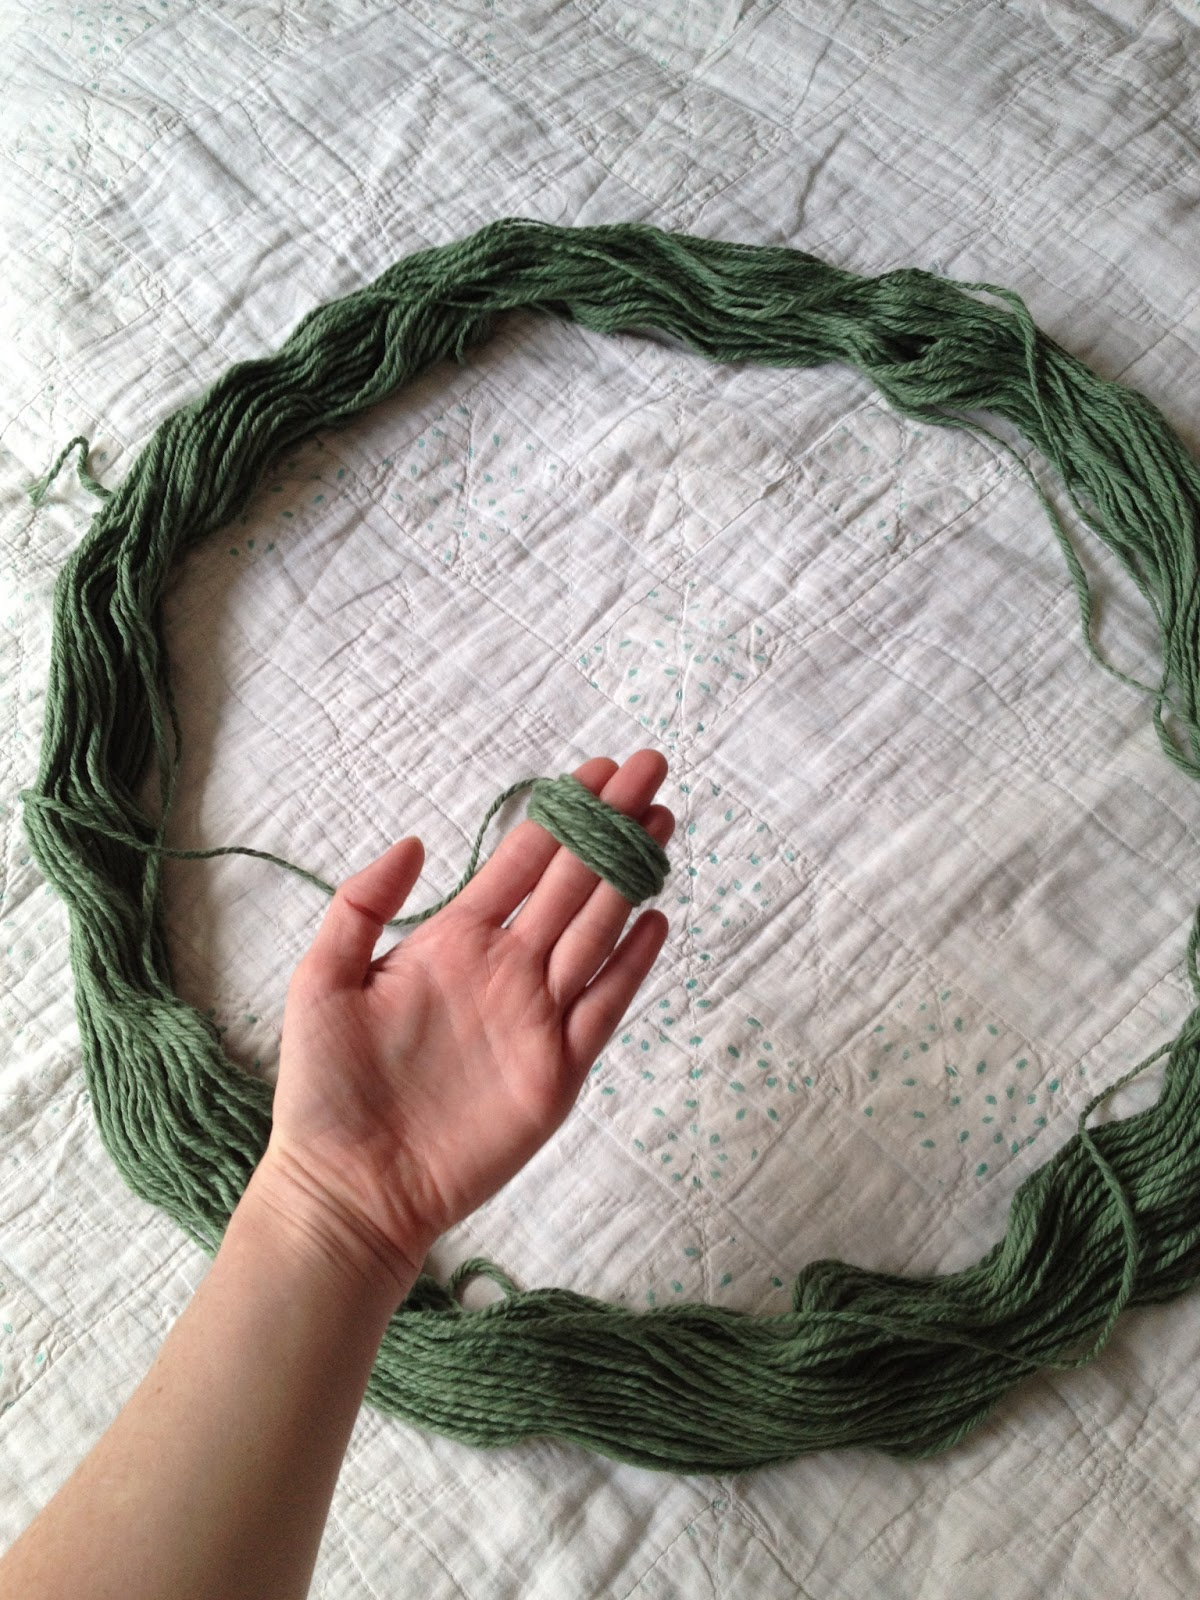 WIND YARN ON YOUR FINGERS